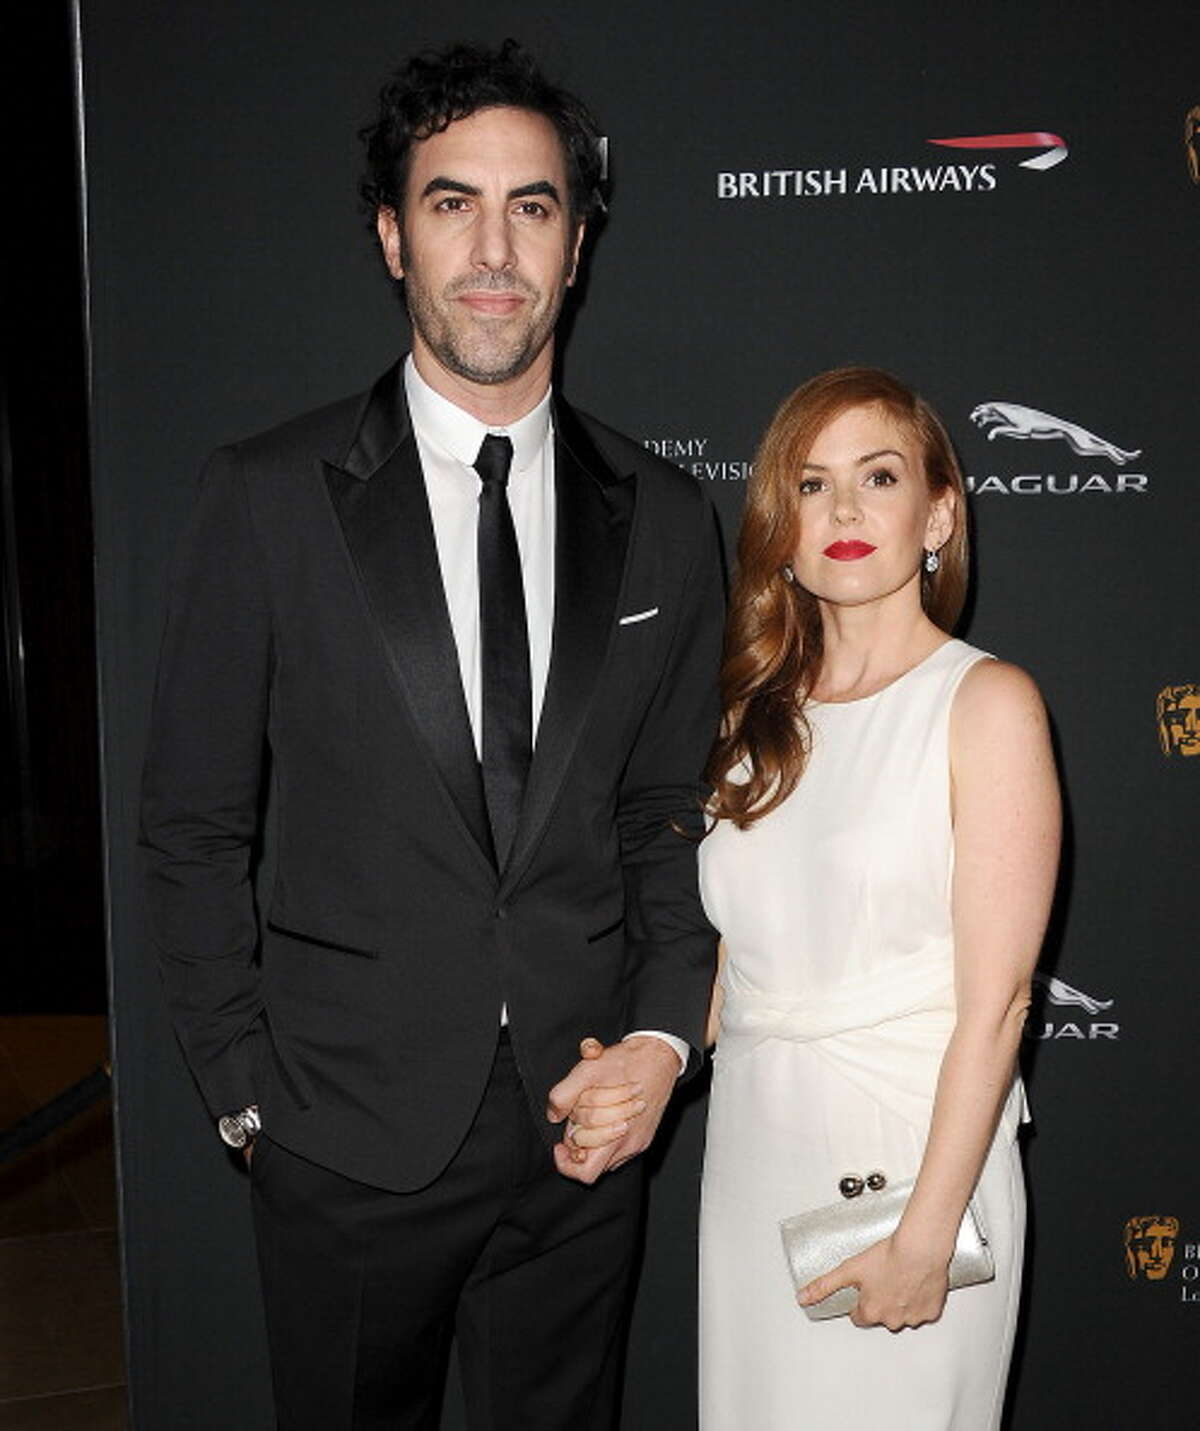 Tall celebs like Sasha Baron Cohen will likely always tower over their significant others, in his case - Isla Fisher. Check out other celebrity couples with major height differences.